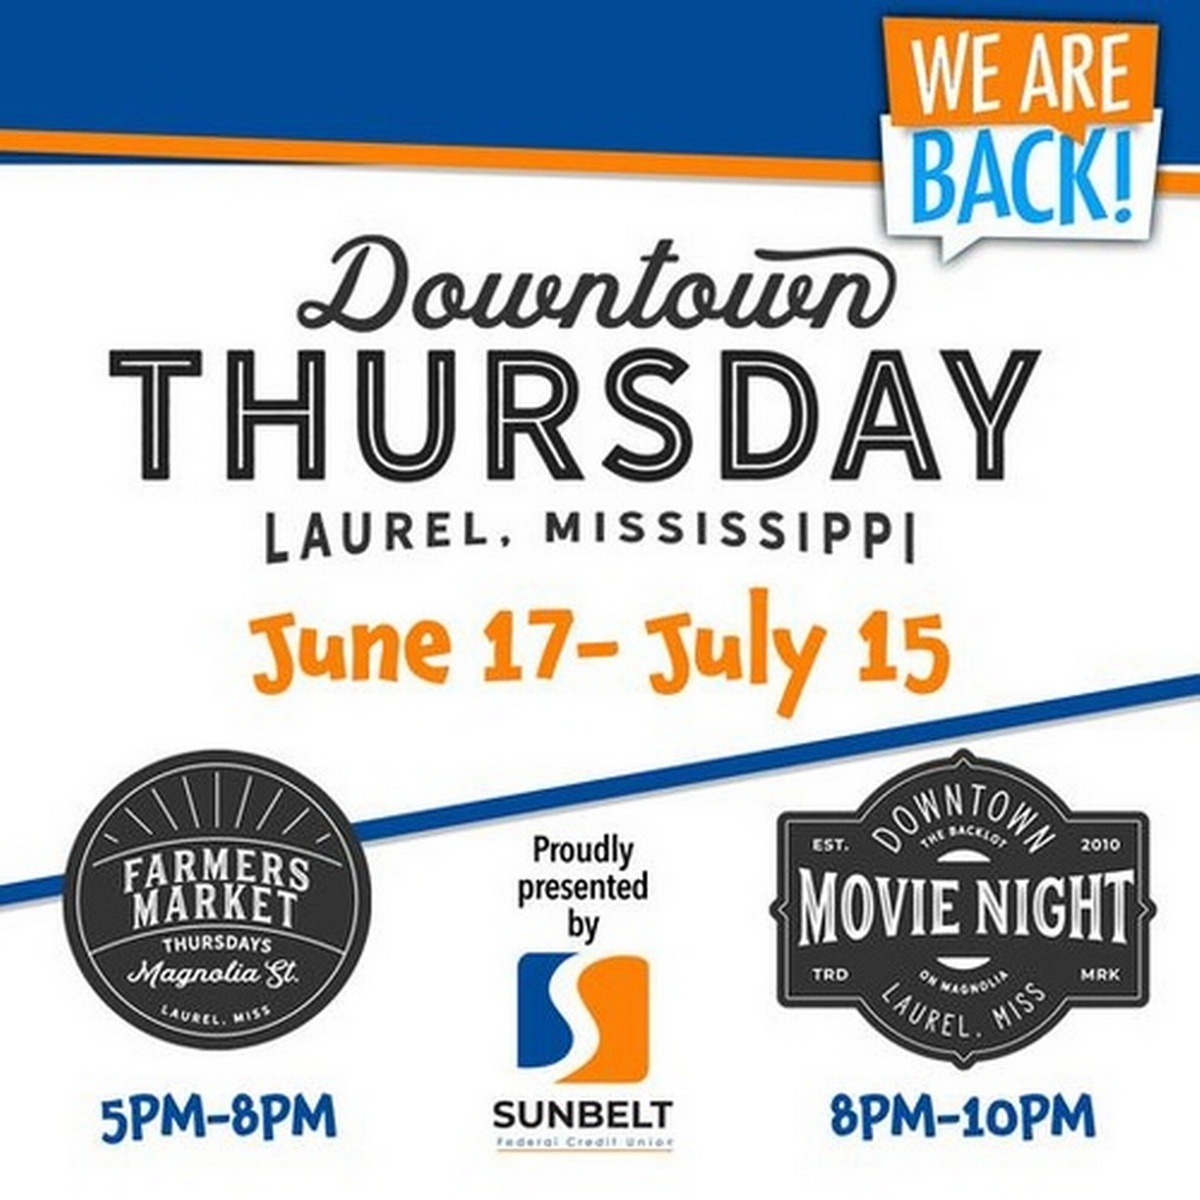 Downtown Thursday: Farmers Market & Downtown Movie Night